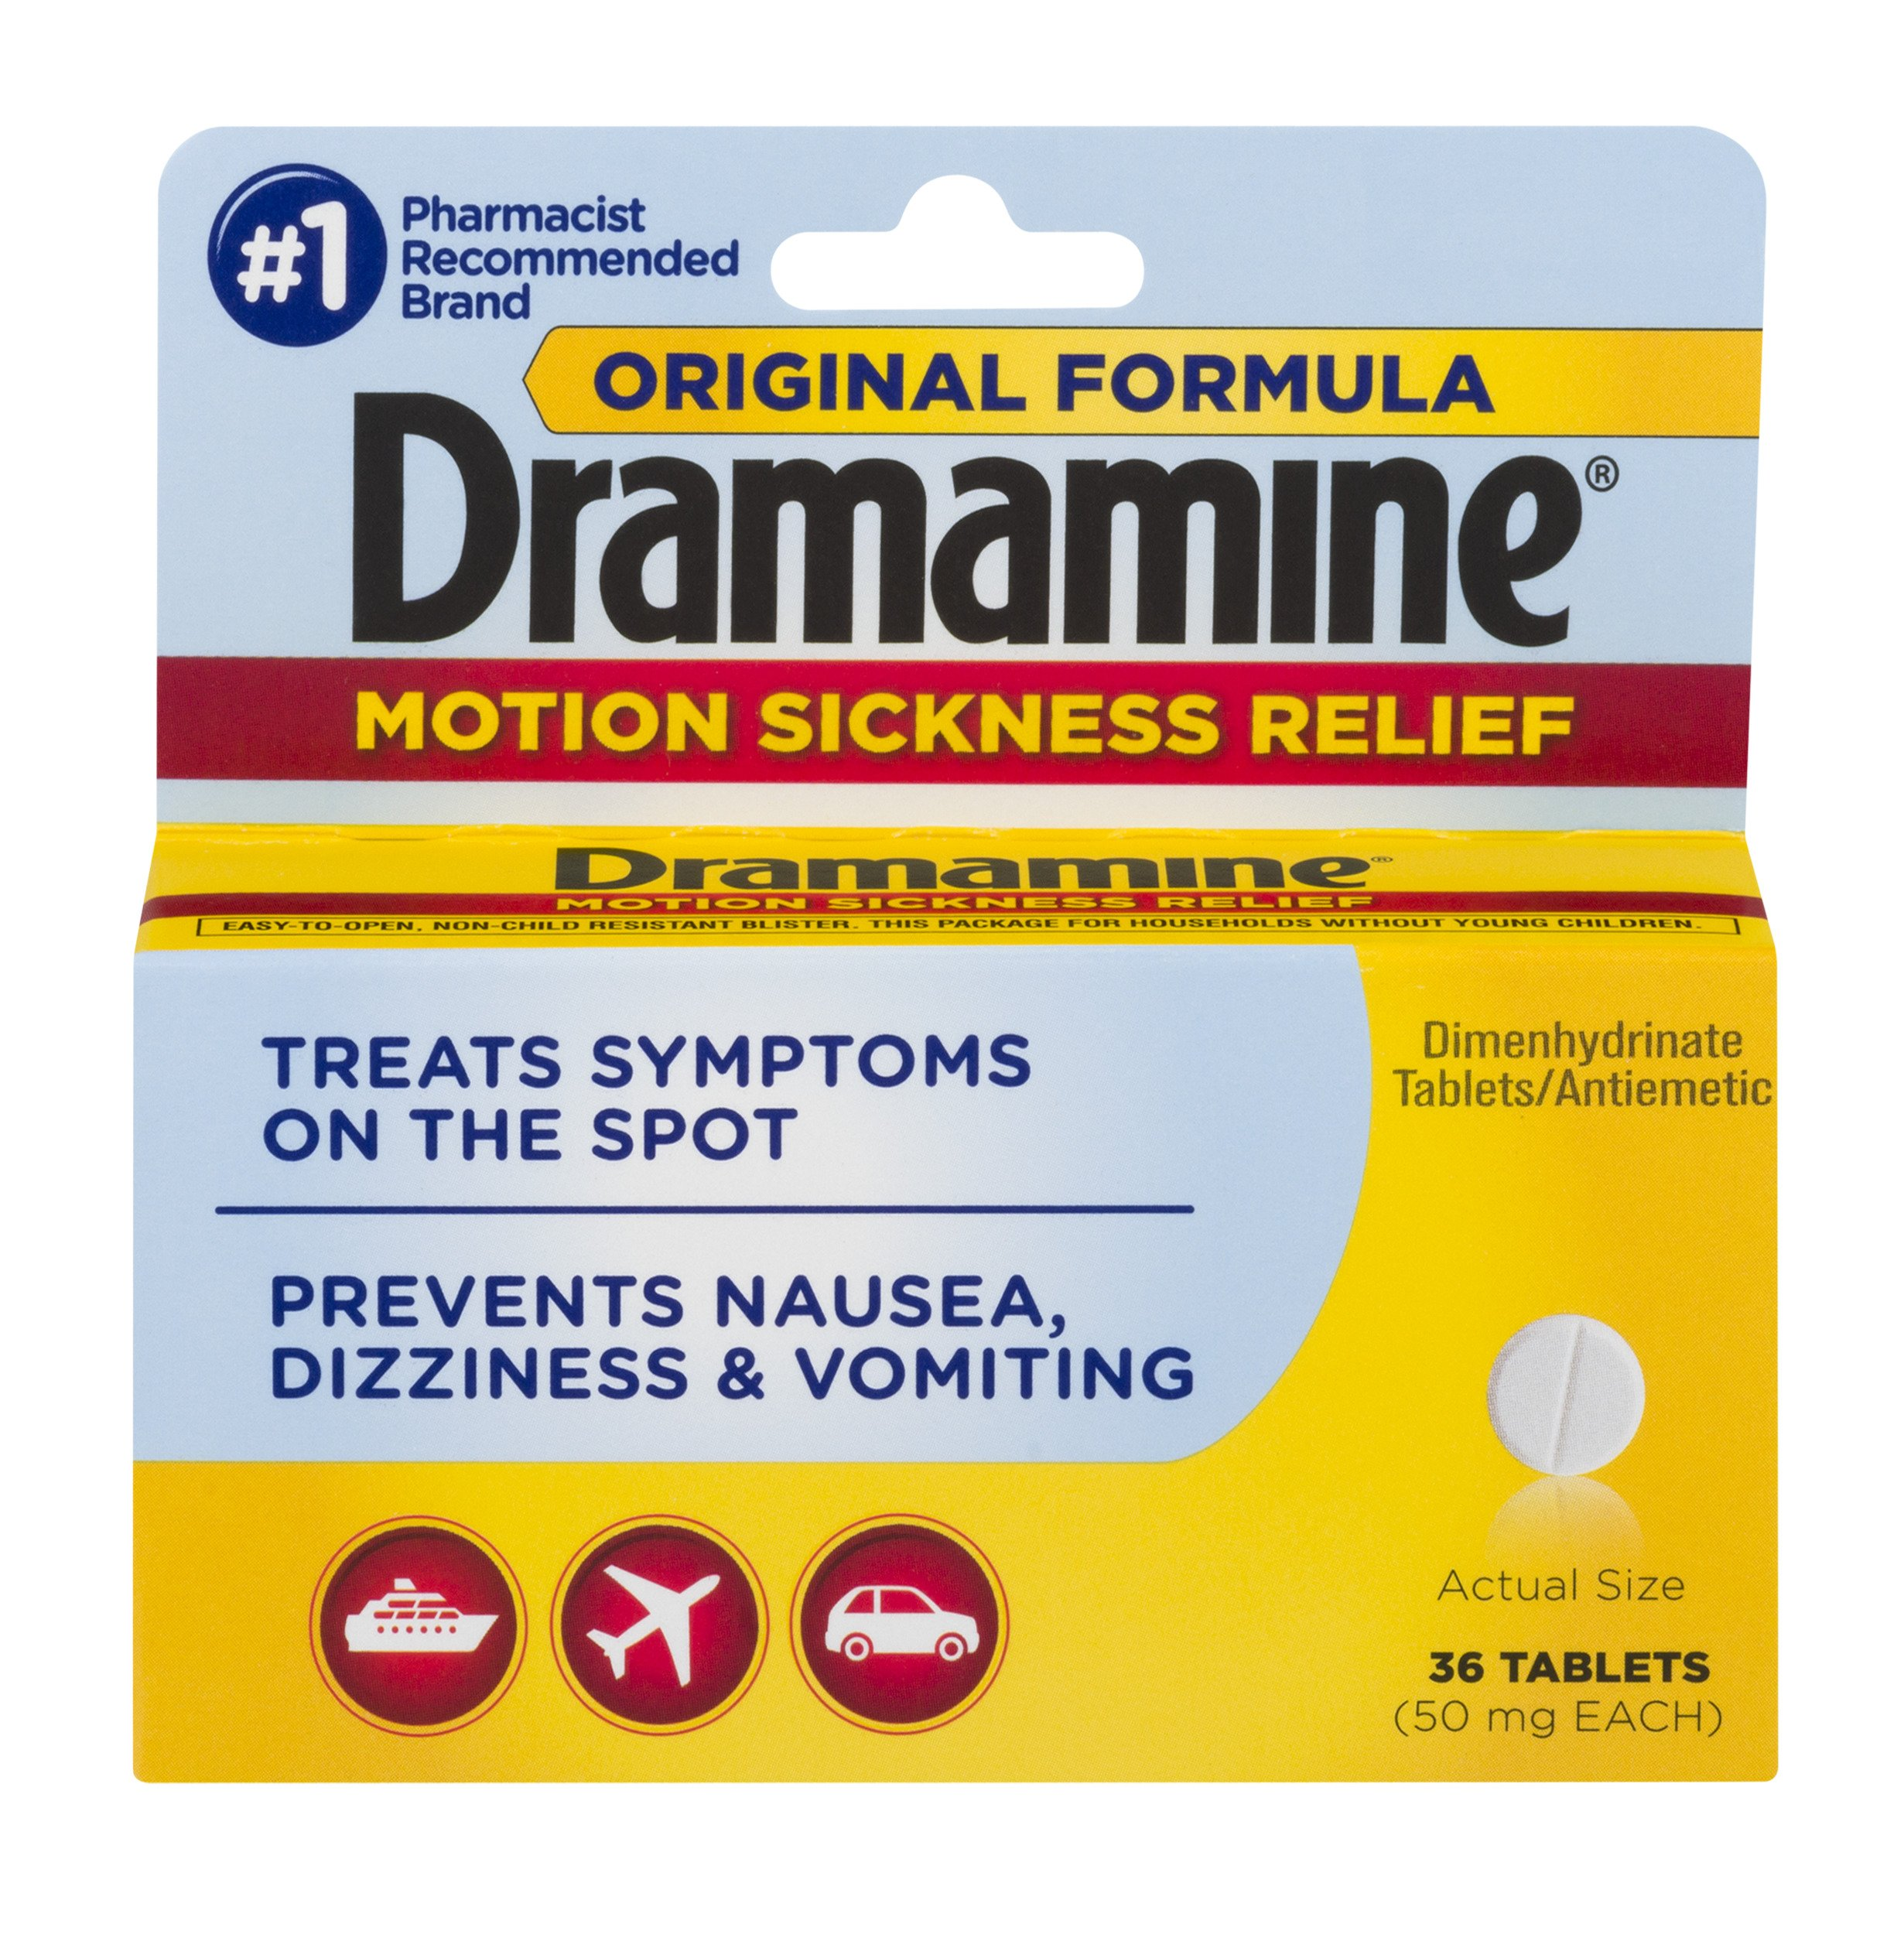 Dramamine Motion Sickness Relief Original Formula | 36 Tablets | Prevents Nausea, Dizziness, and Vomiting by Dramamine